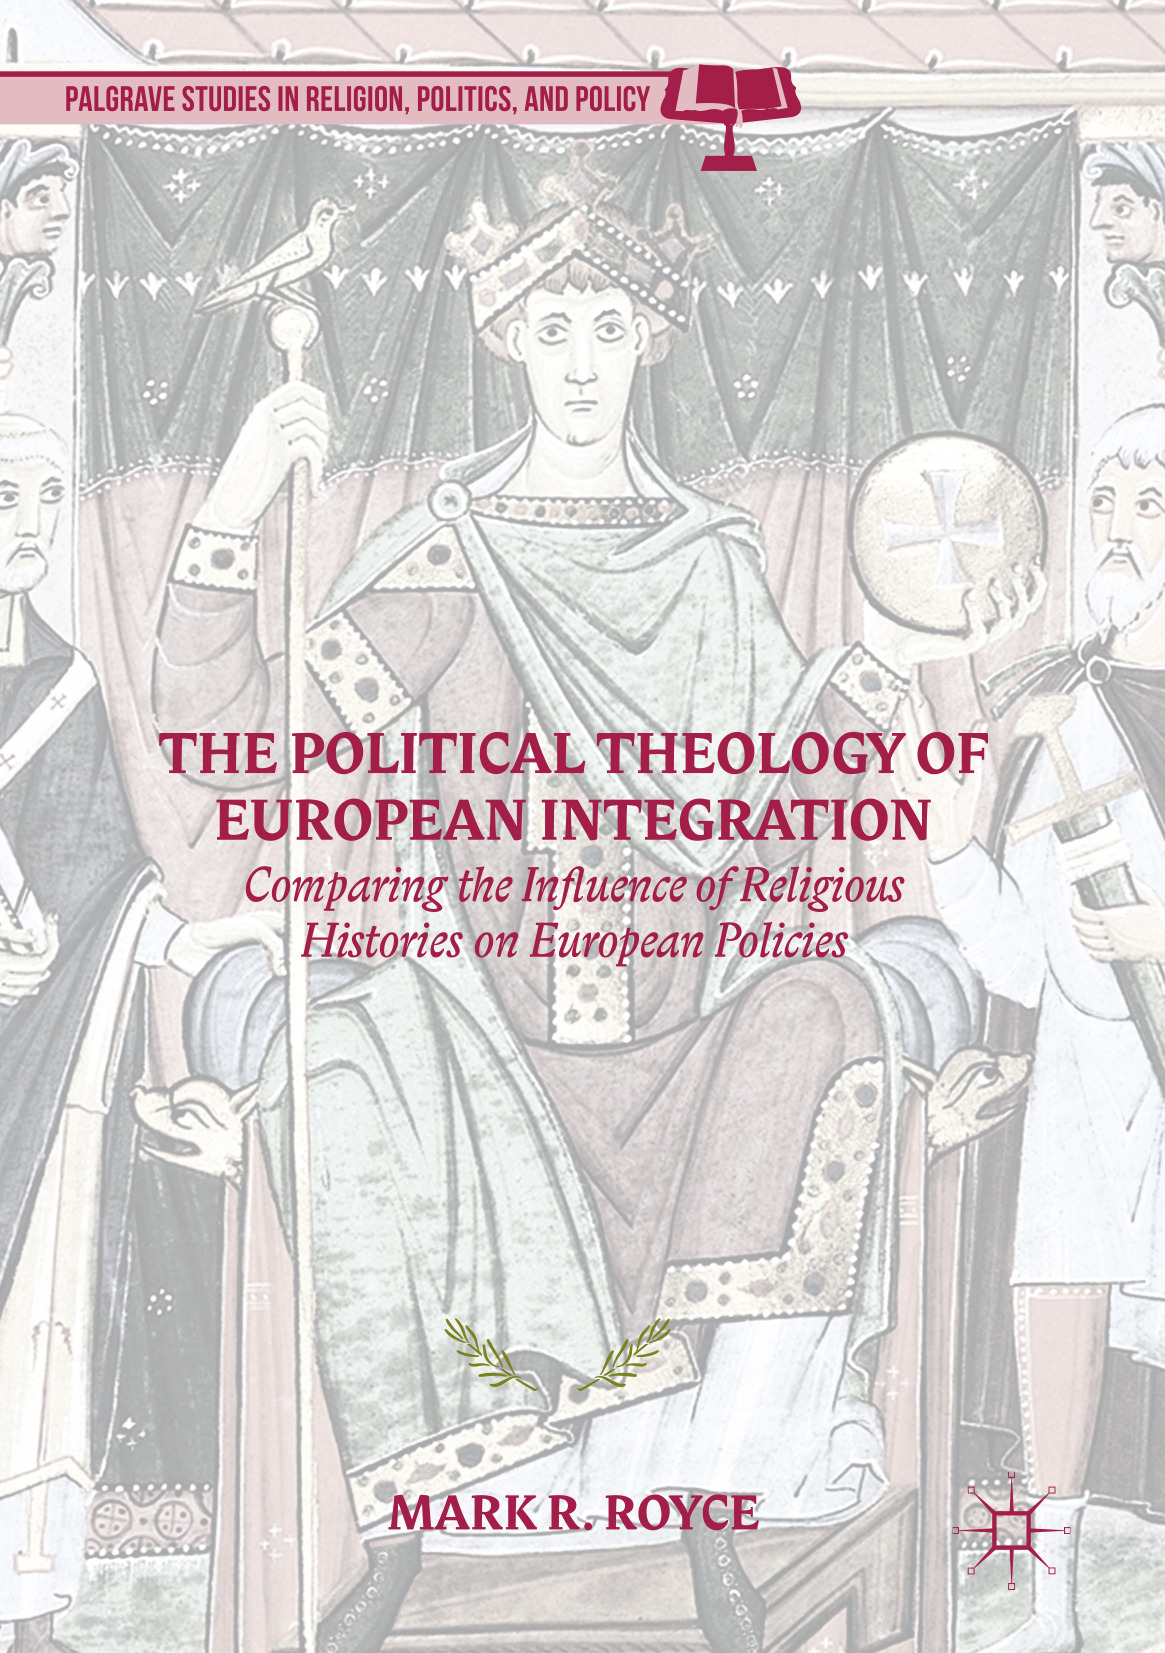 Royce, Mark R. - The Political Theology of European Integration, ebook